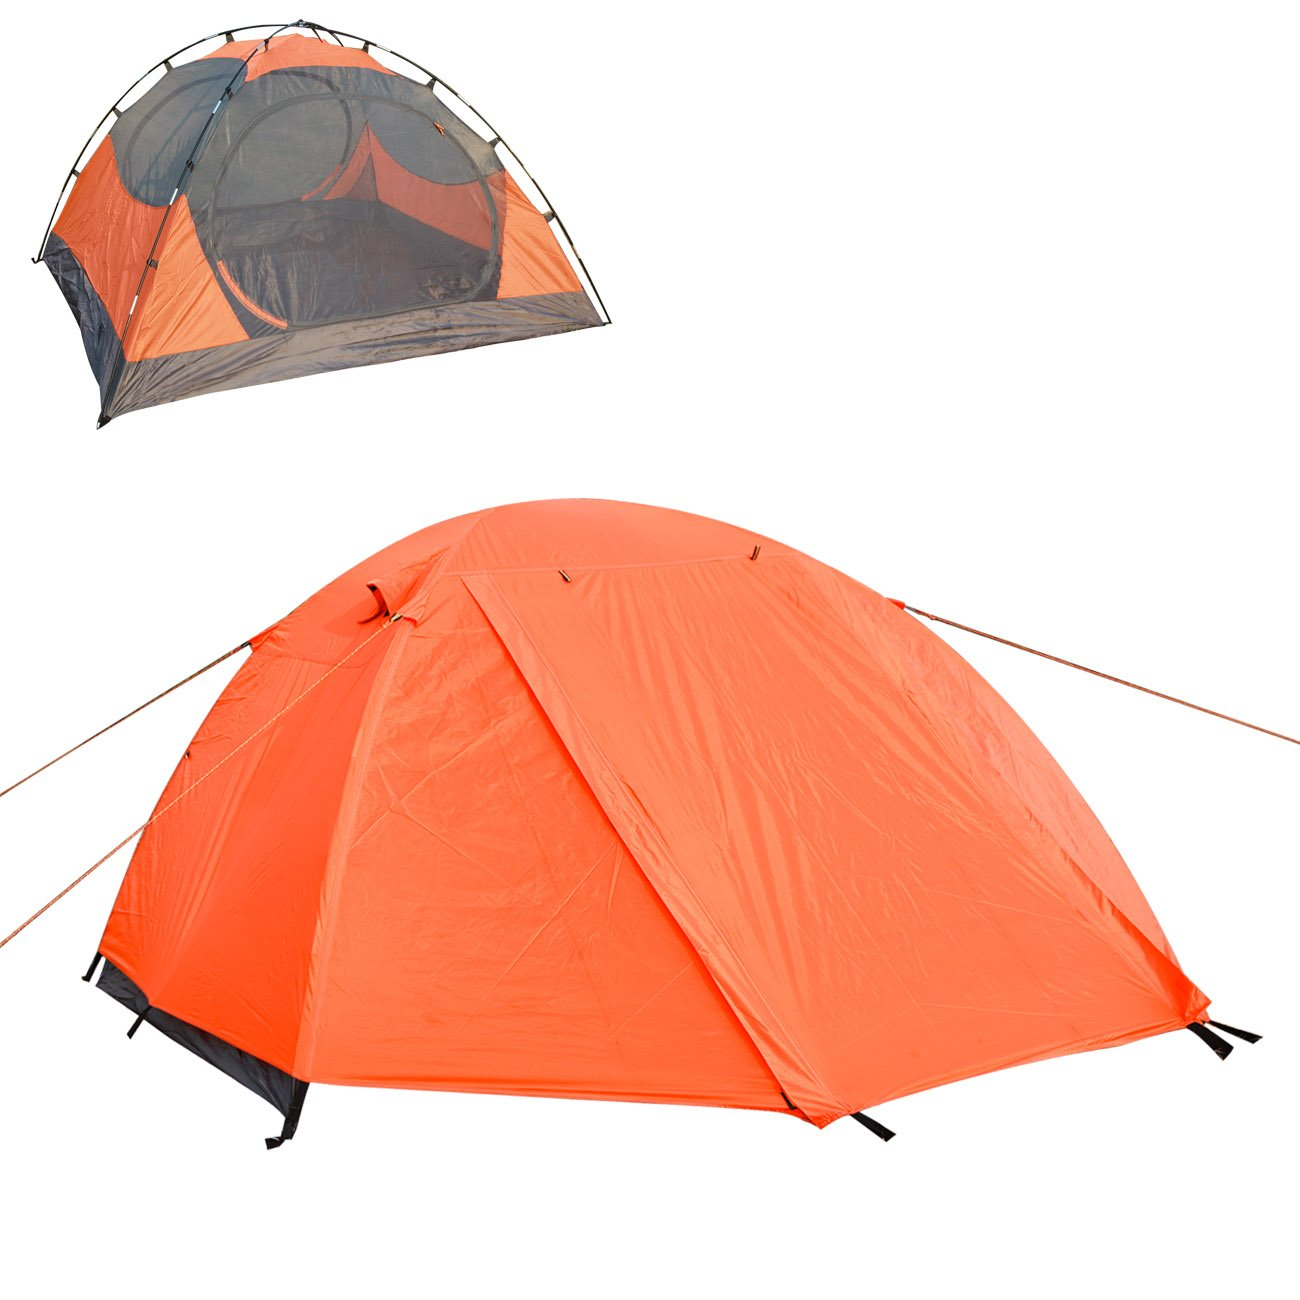 LETHMIK Portable Outdoor Backpacking Tent,2-3 Person Ultralight Waterproof Easy Set Up Family Tent with Carrying Bag